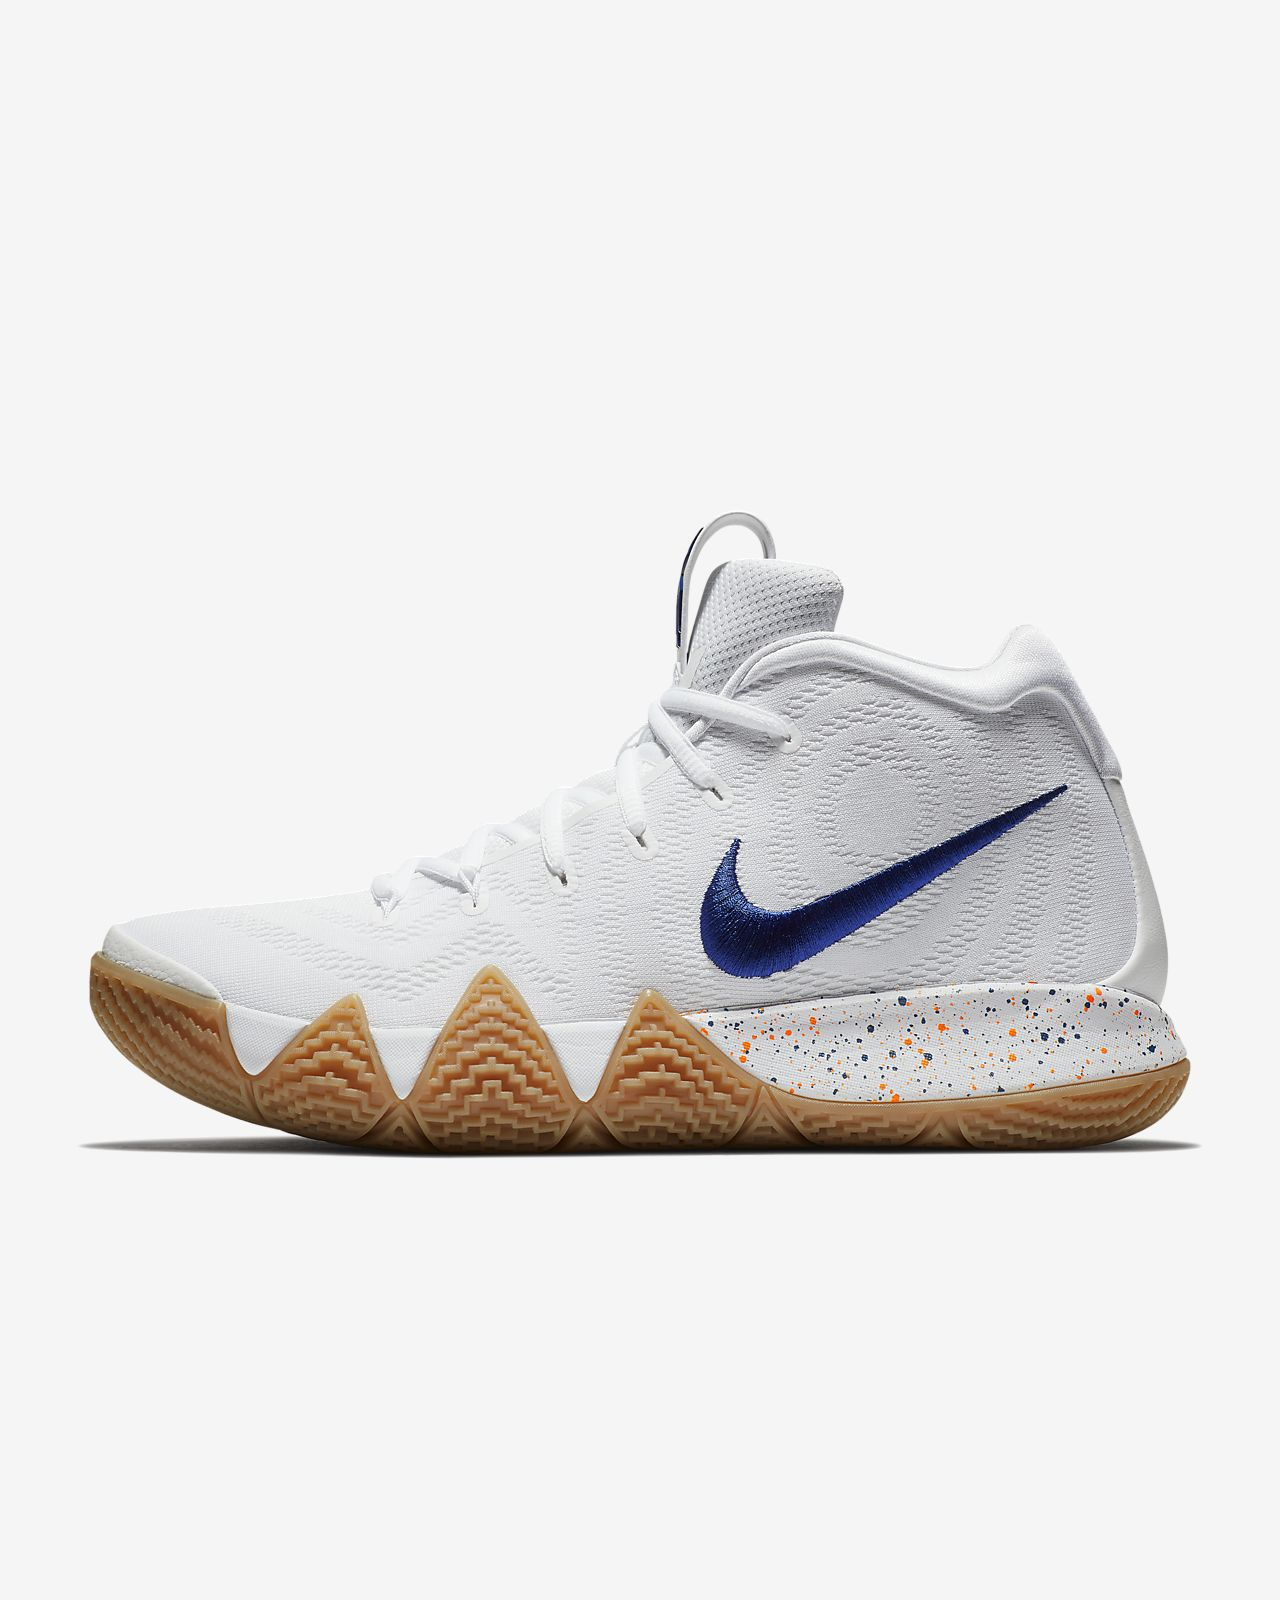 Kyrie 4 'Uncle Drew' Basketball Shoe